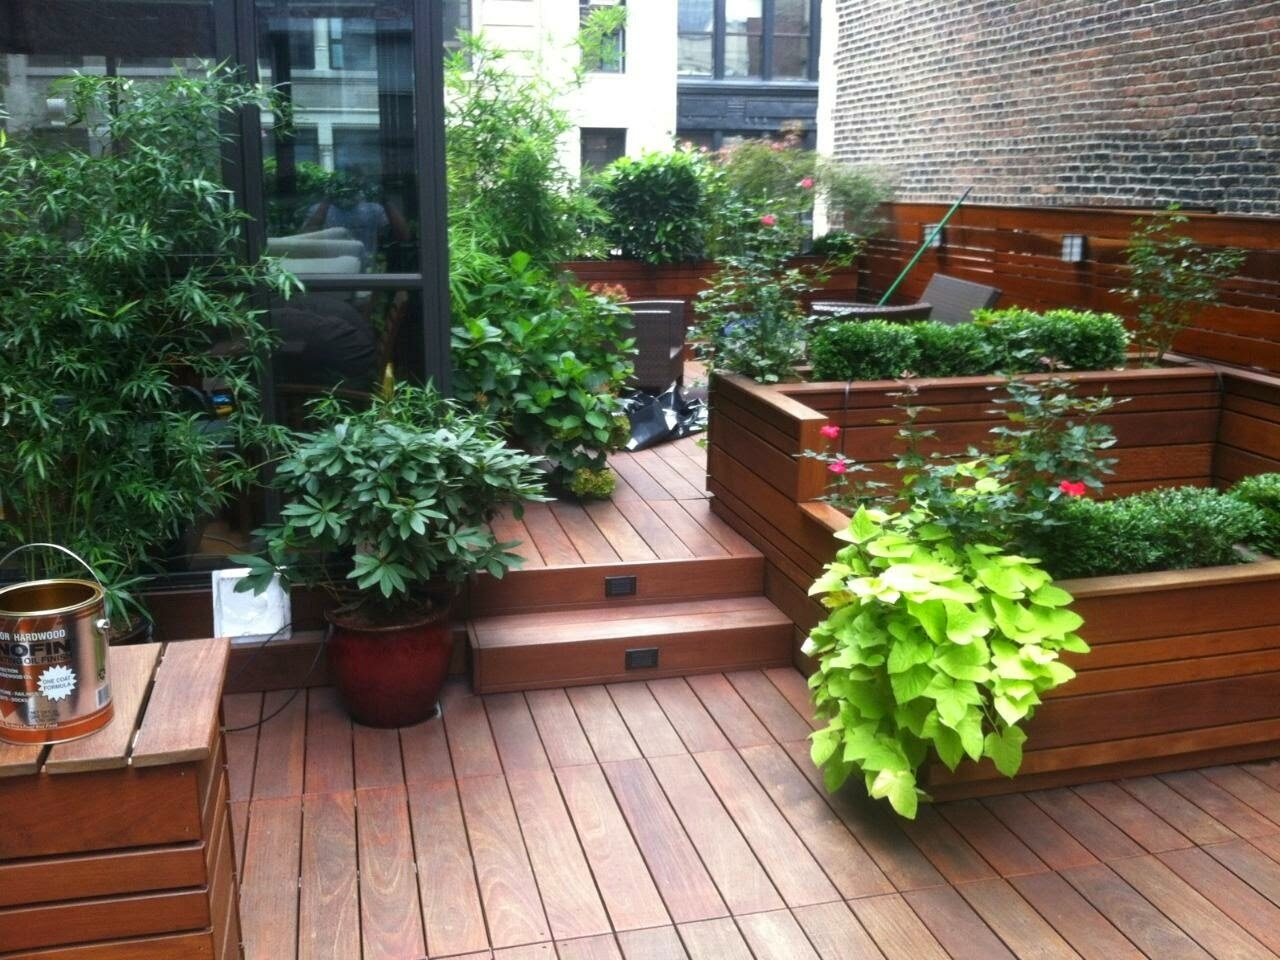 Ny rooftop gardeners nyc rooftop garden designers - Urban gardening in contaminated areas ...